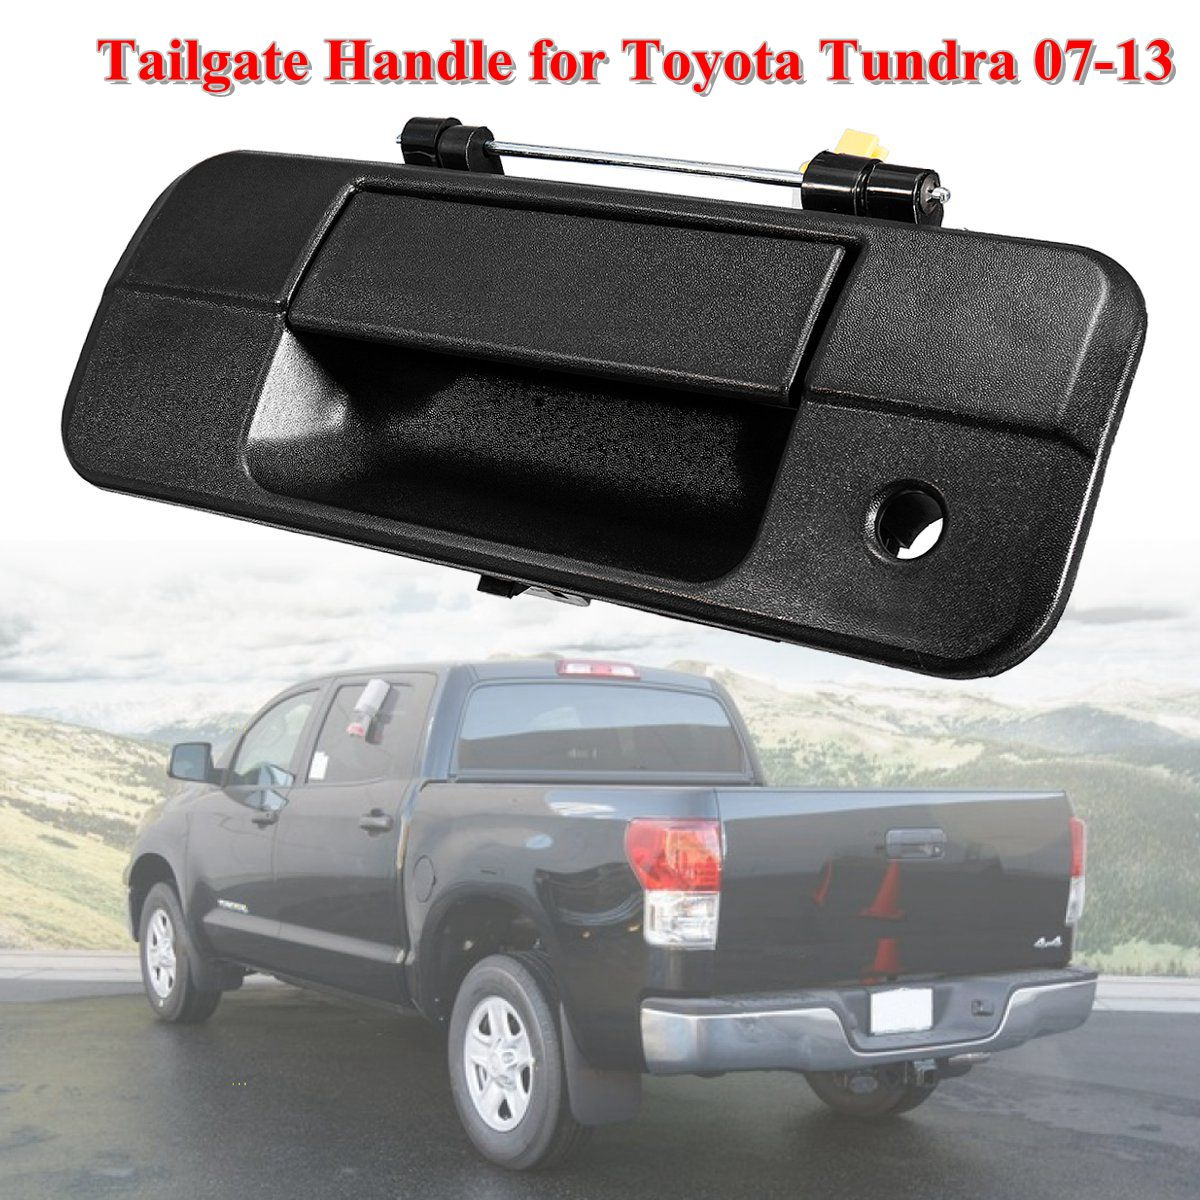 Keyhole Tailgate-Handle 690900C040 Toyota Tundra 2009 2008 2007 For Black Textured Camera-Type